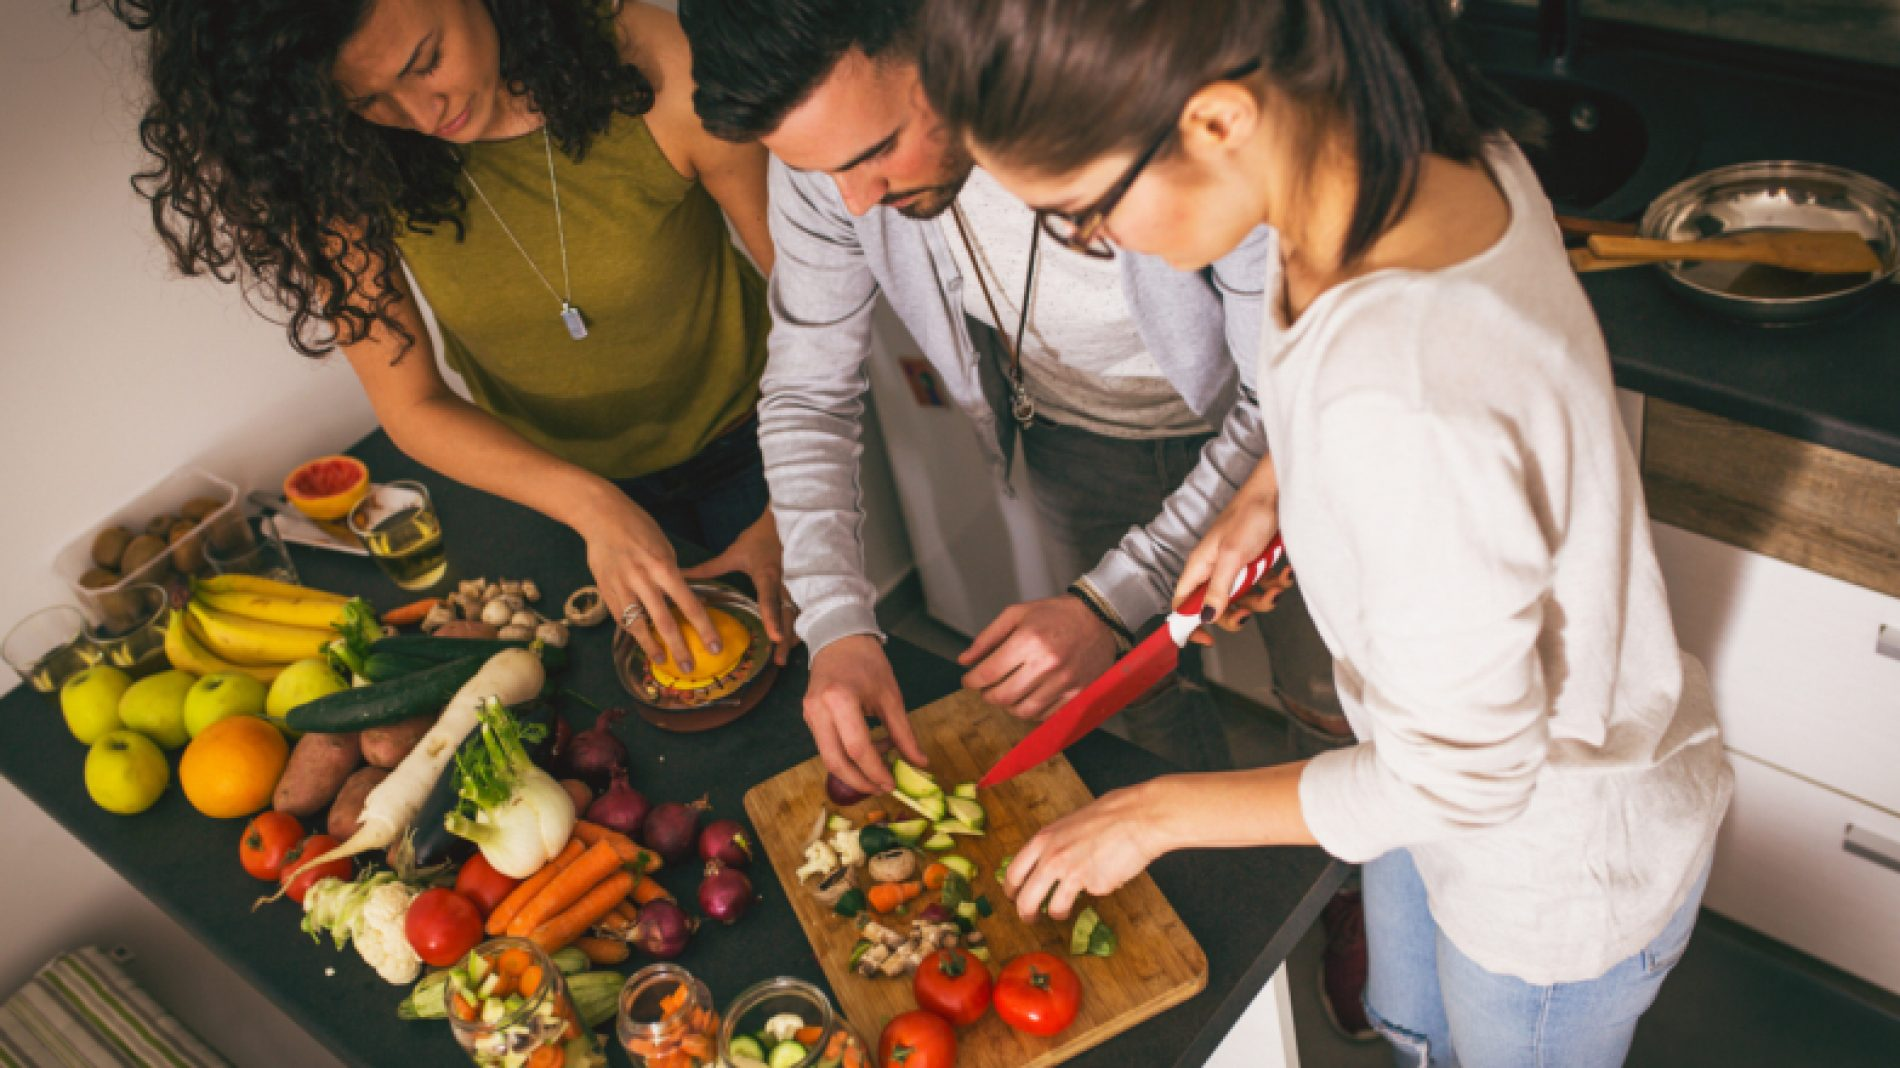 Cooking-healthy-food-ChY85q